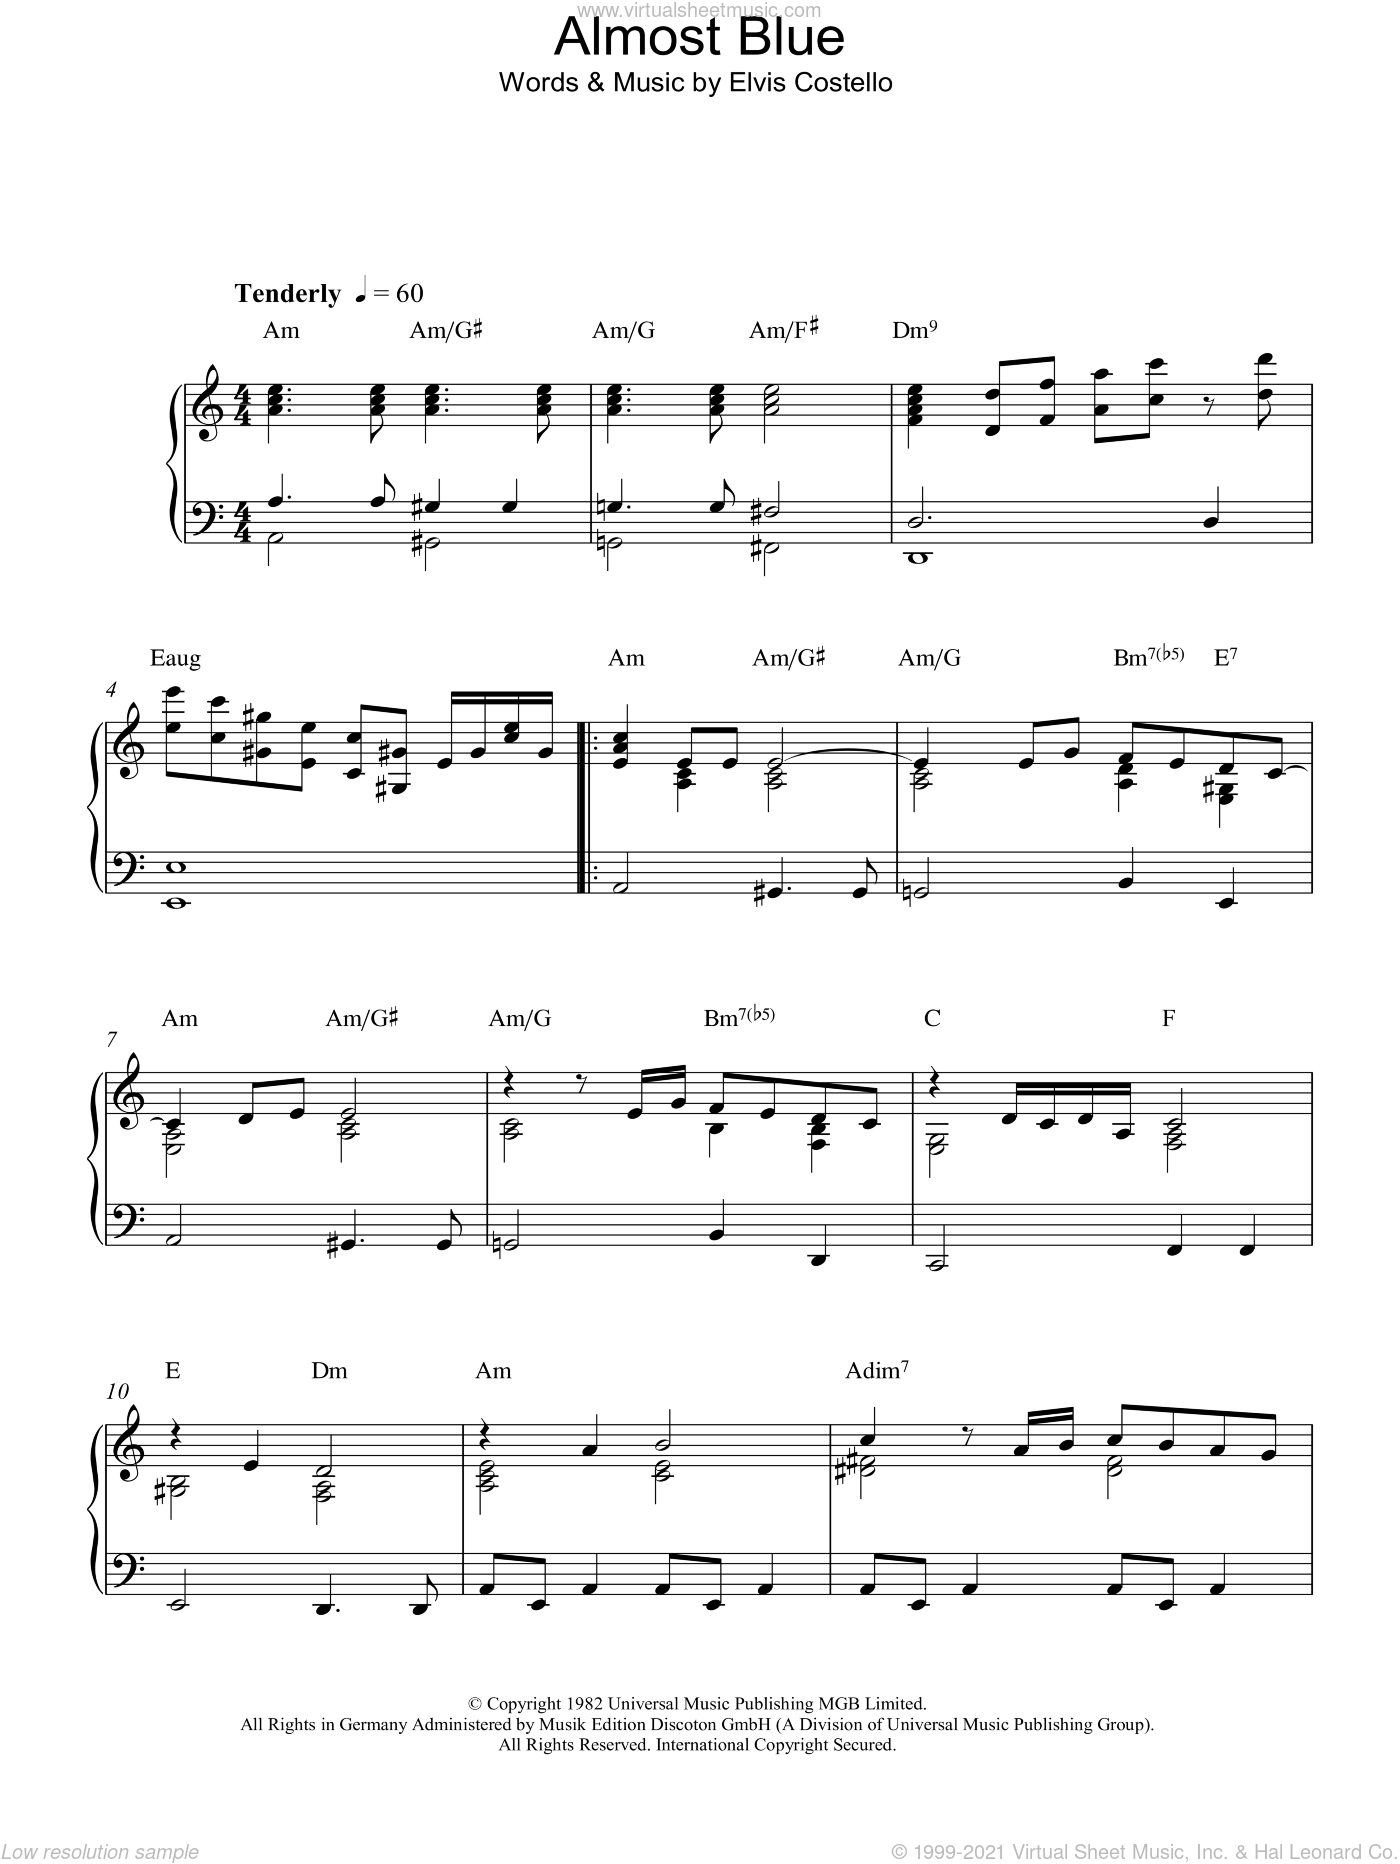 Almost Blue sheet music for piano solo by Elvis Costello and Diana Krall, intermediate